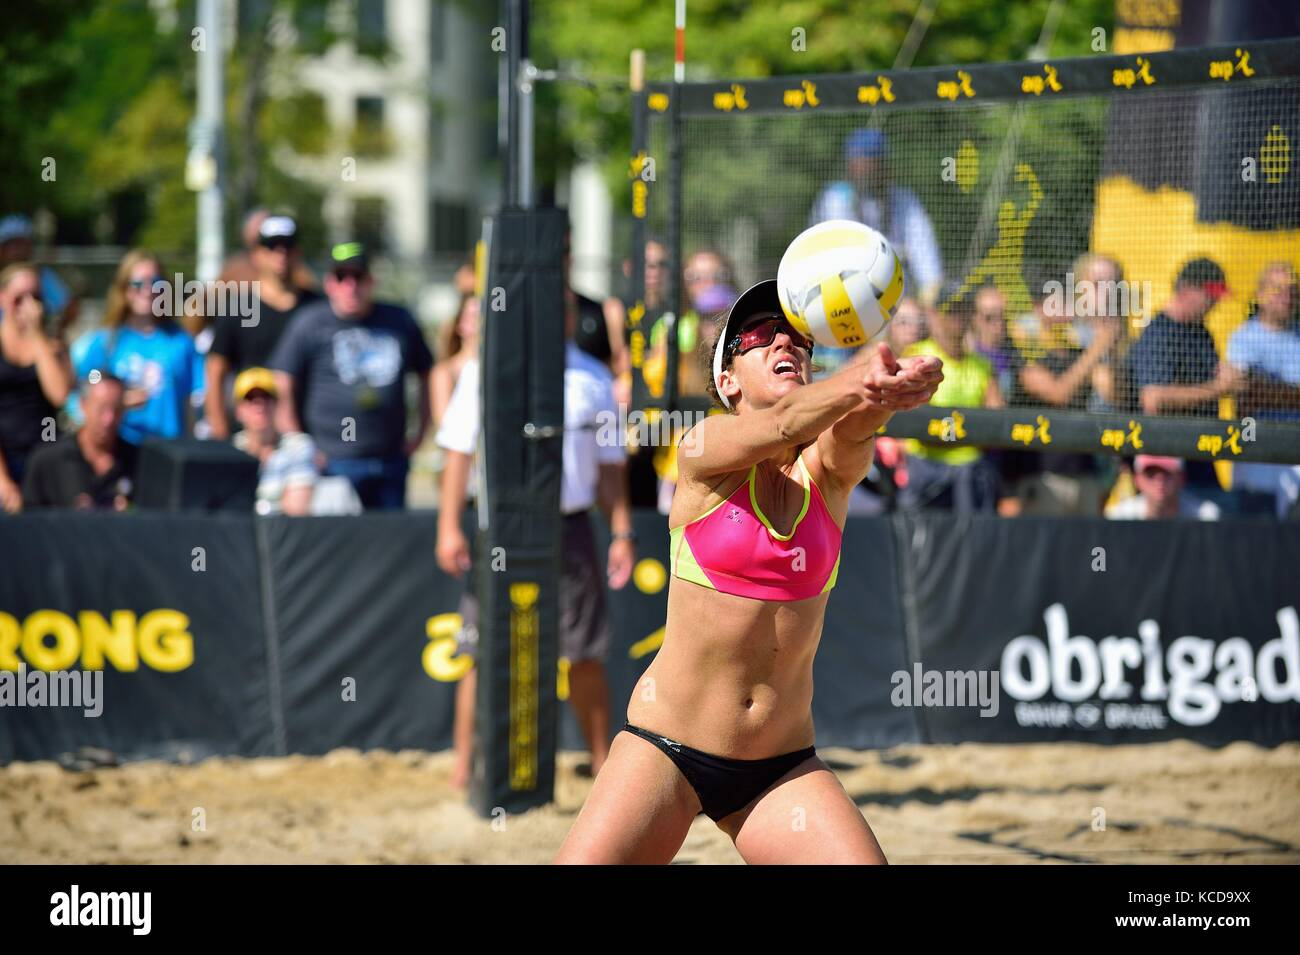 April Ross after had just rebounding from a dive to the sand to perform this set for a kill shot from her partner. - Stock Image